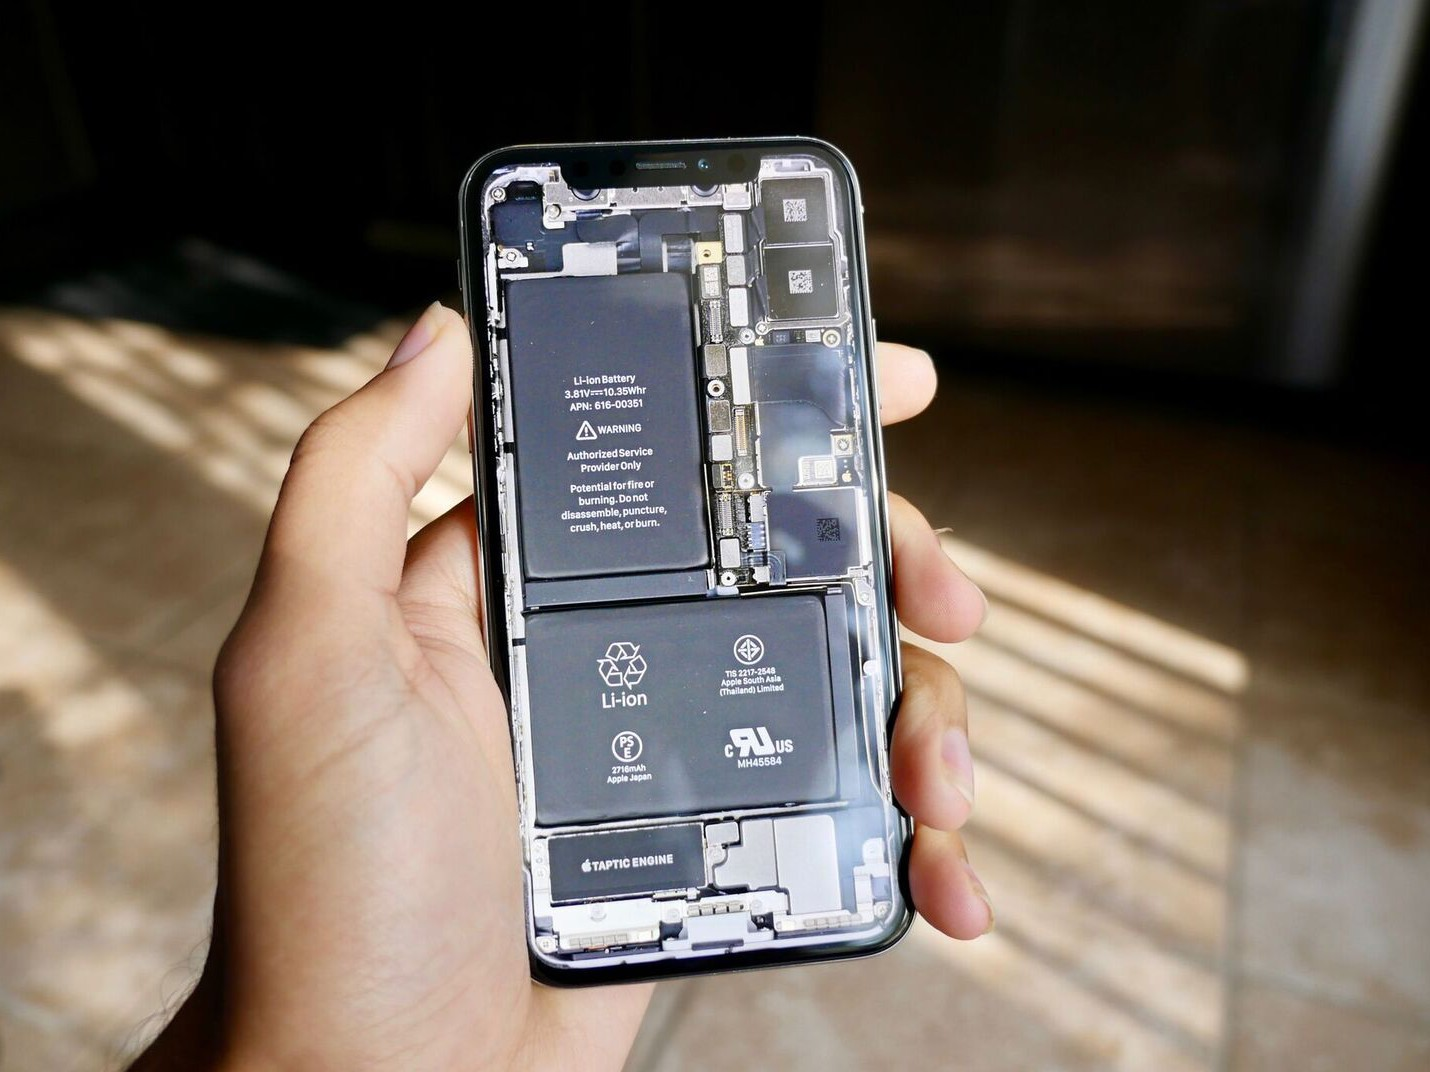 Ifixit Iphone X Internal Wallpaper These Iphone X Wallpapers Put The Inside Of Your Phone On